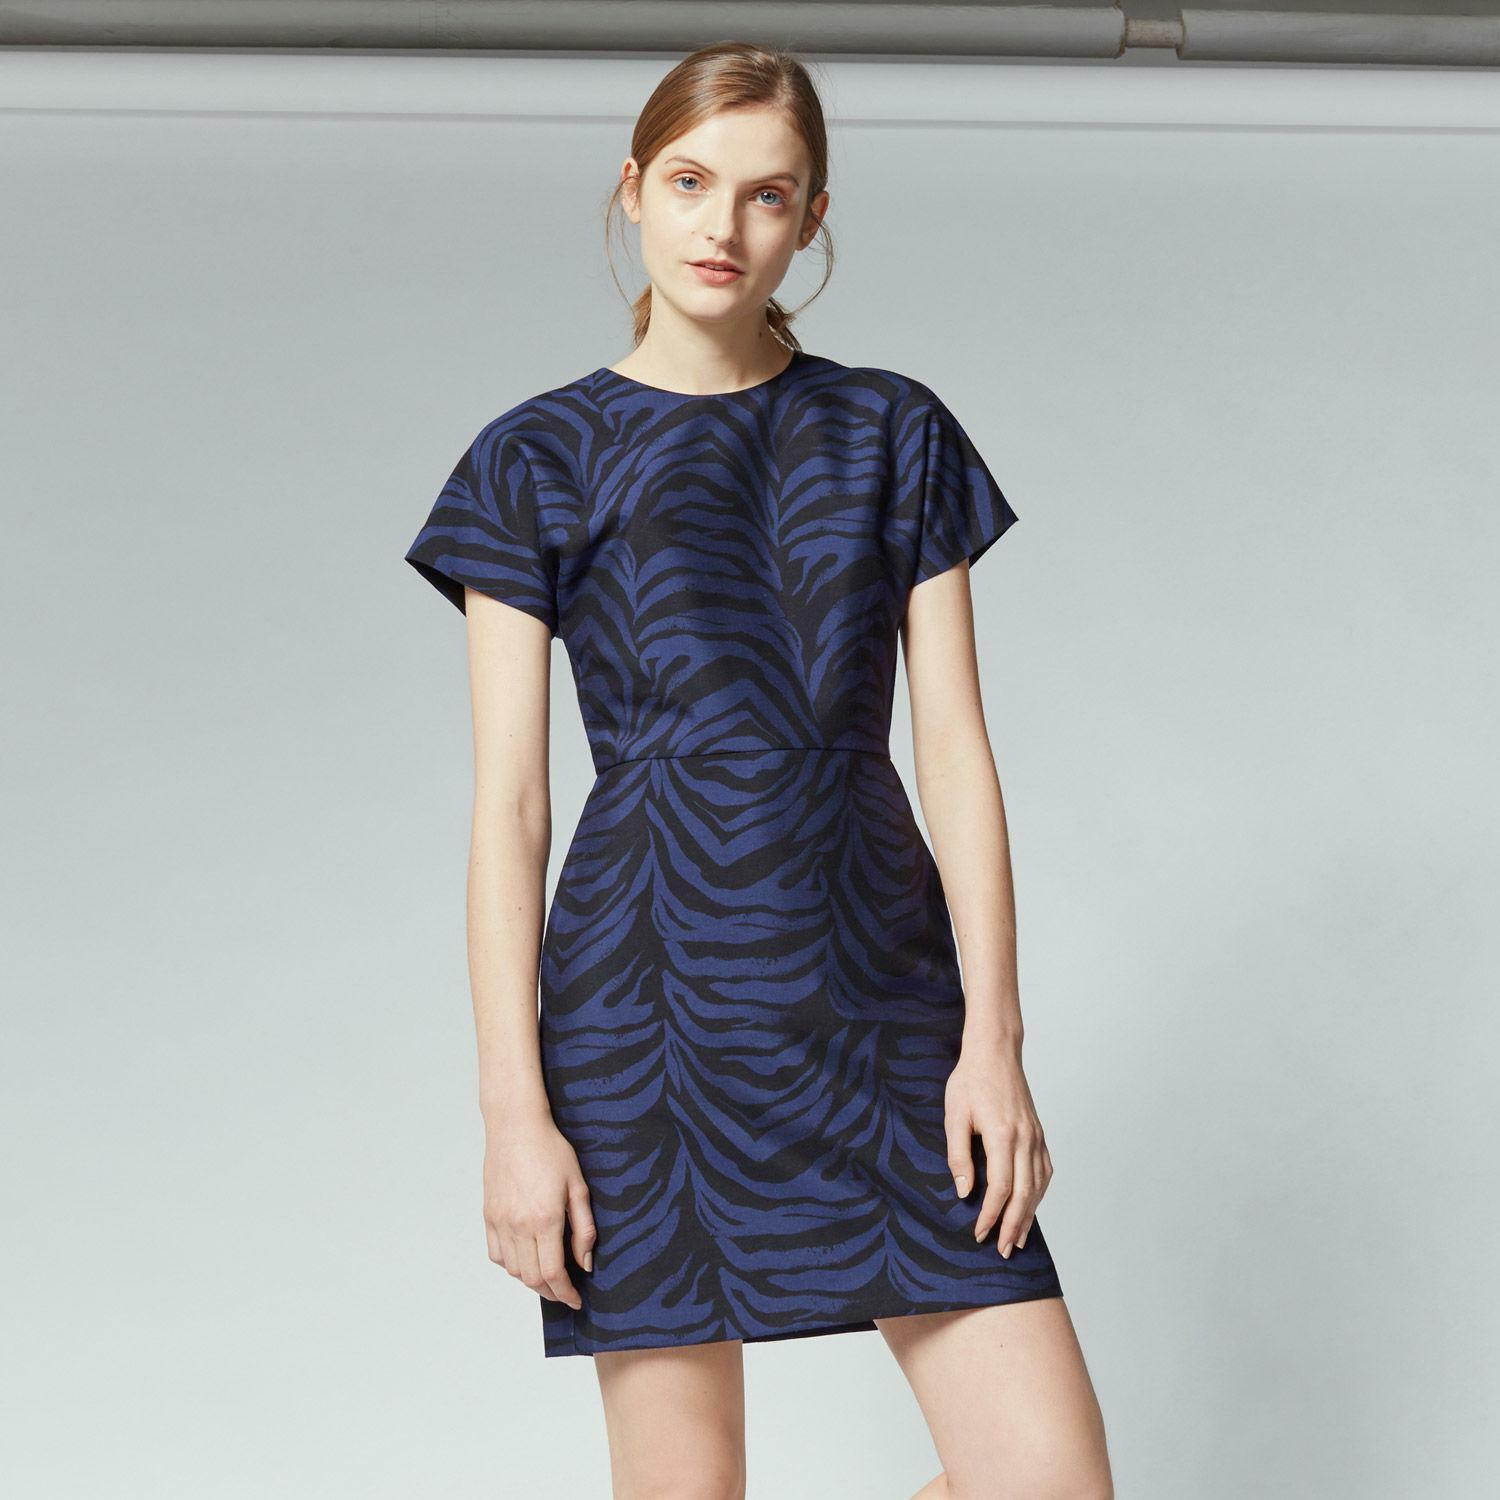 Warehouse Zebra Jacquard Dress Blau Größe 12 rrp   SA079 KK 12